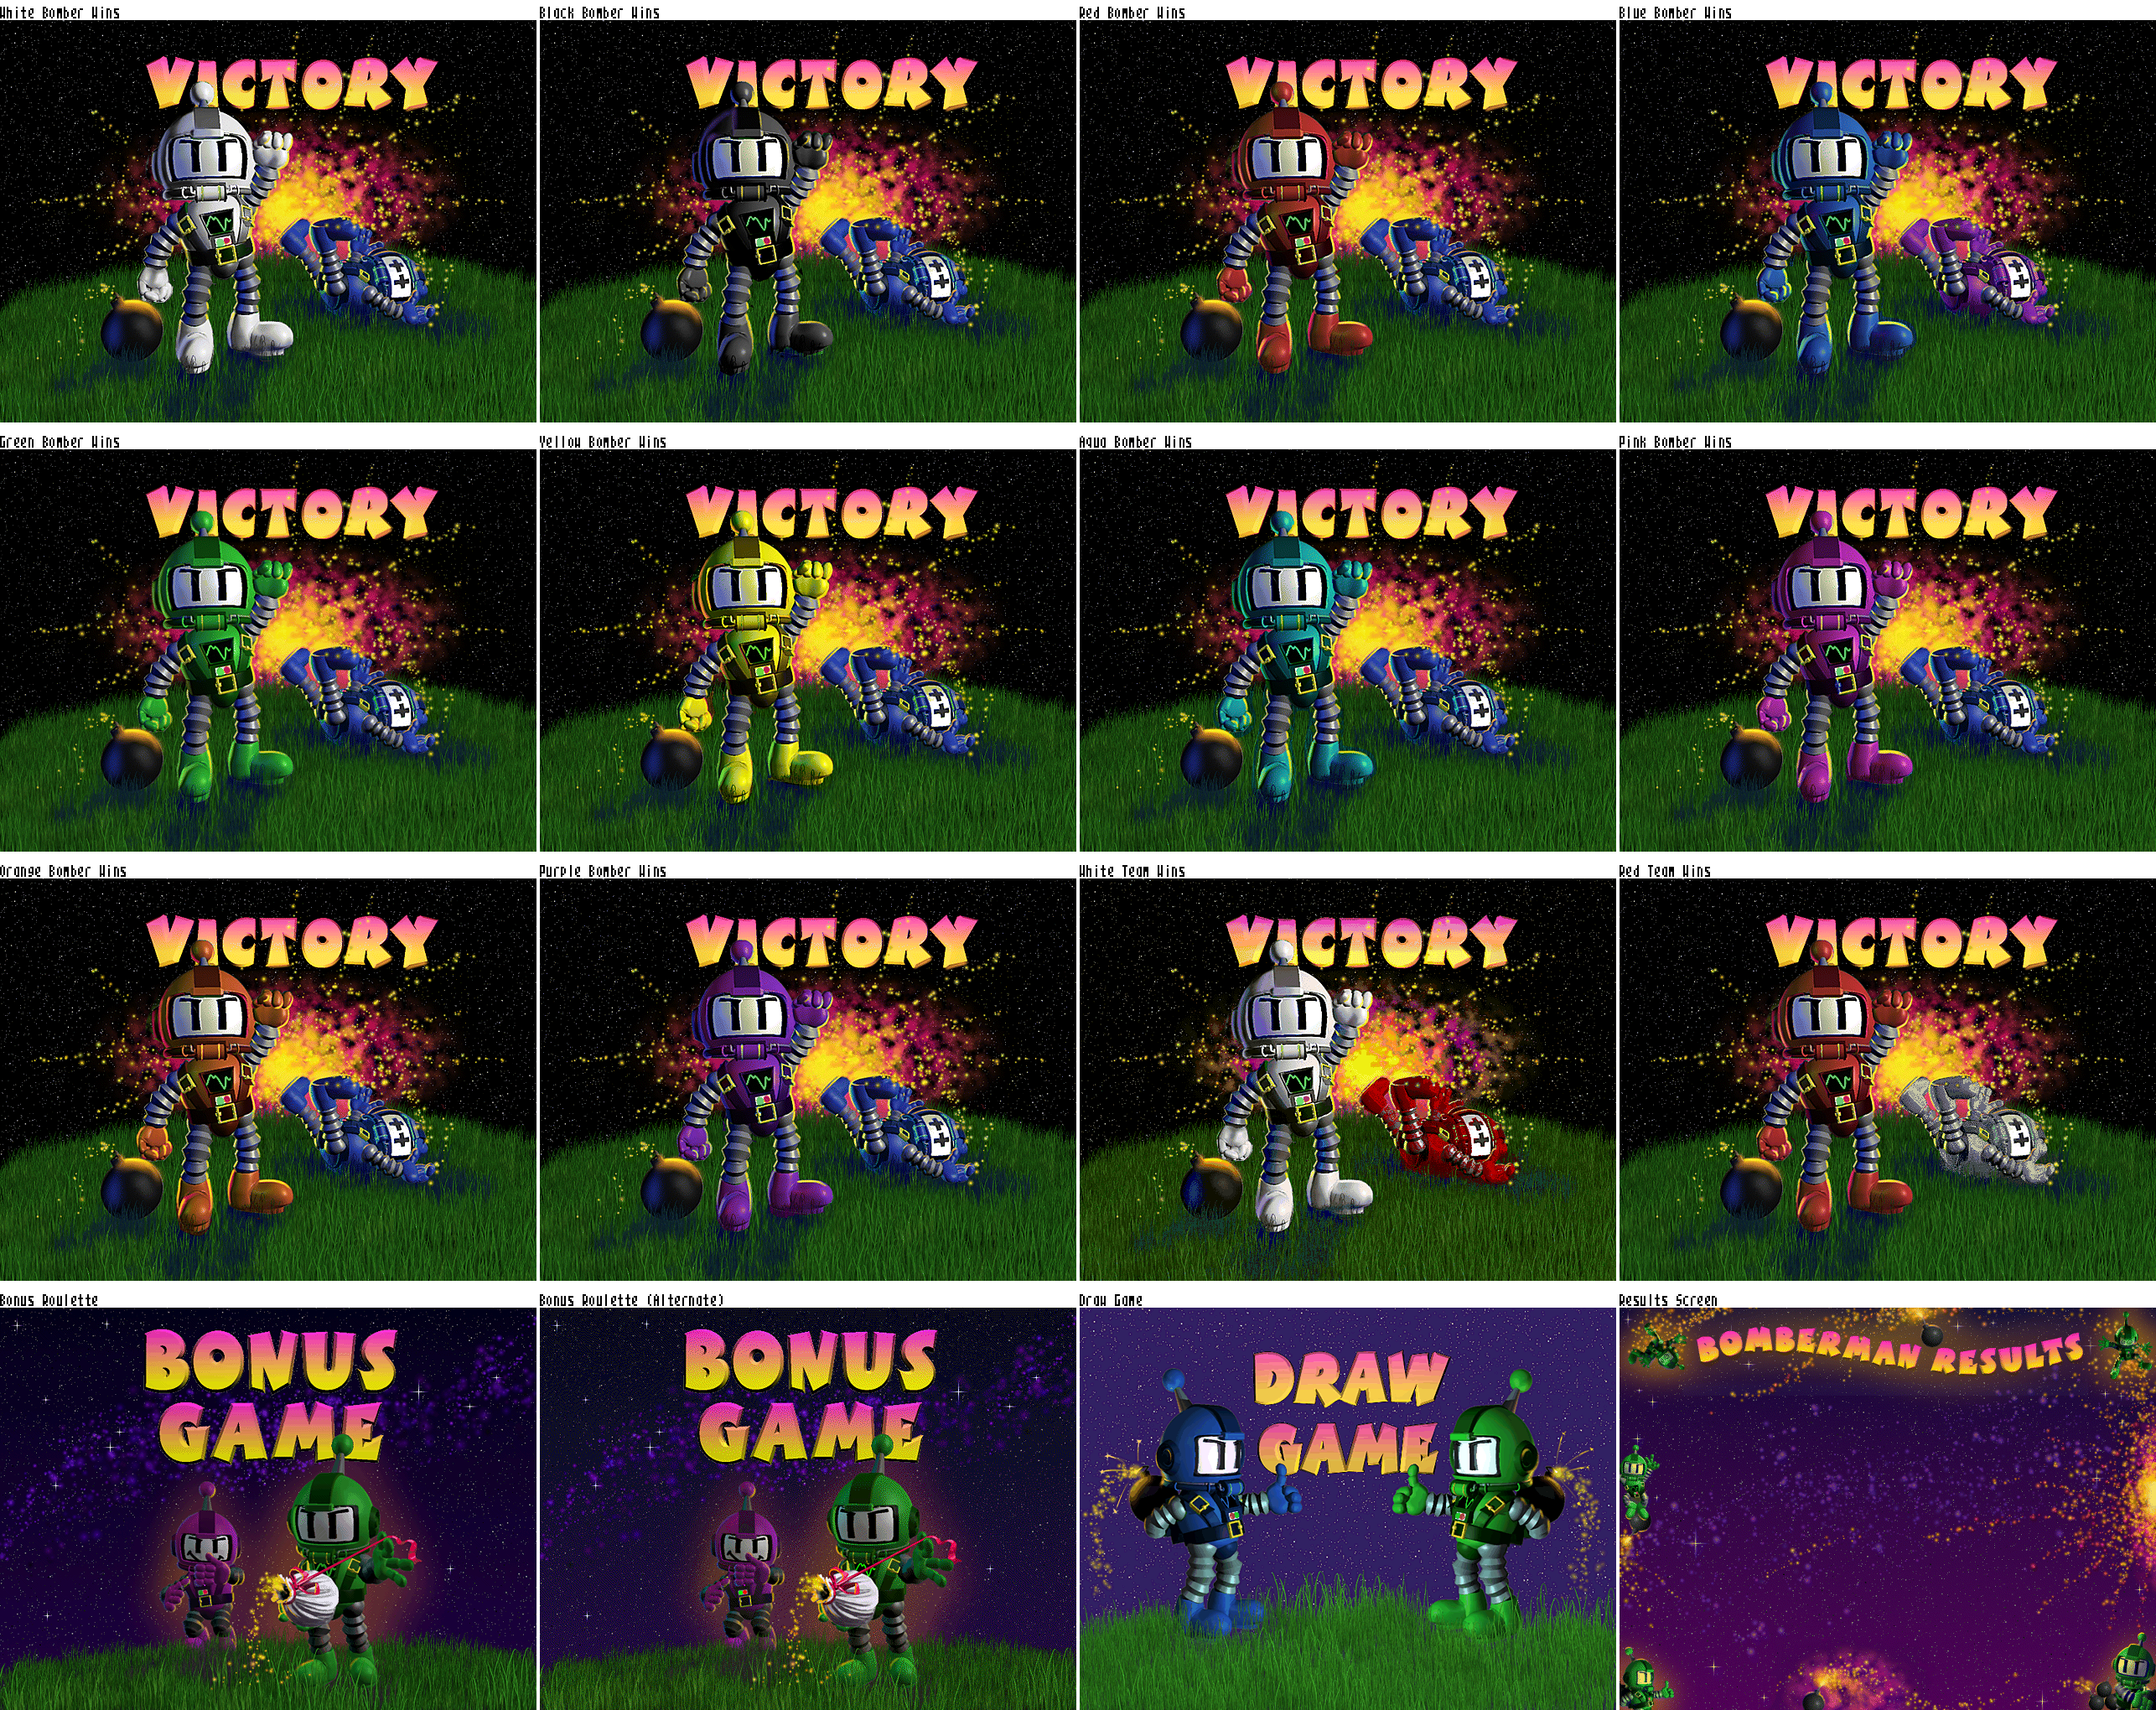 Victory/Results Screen